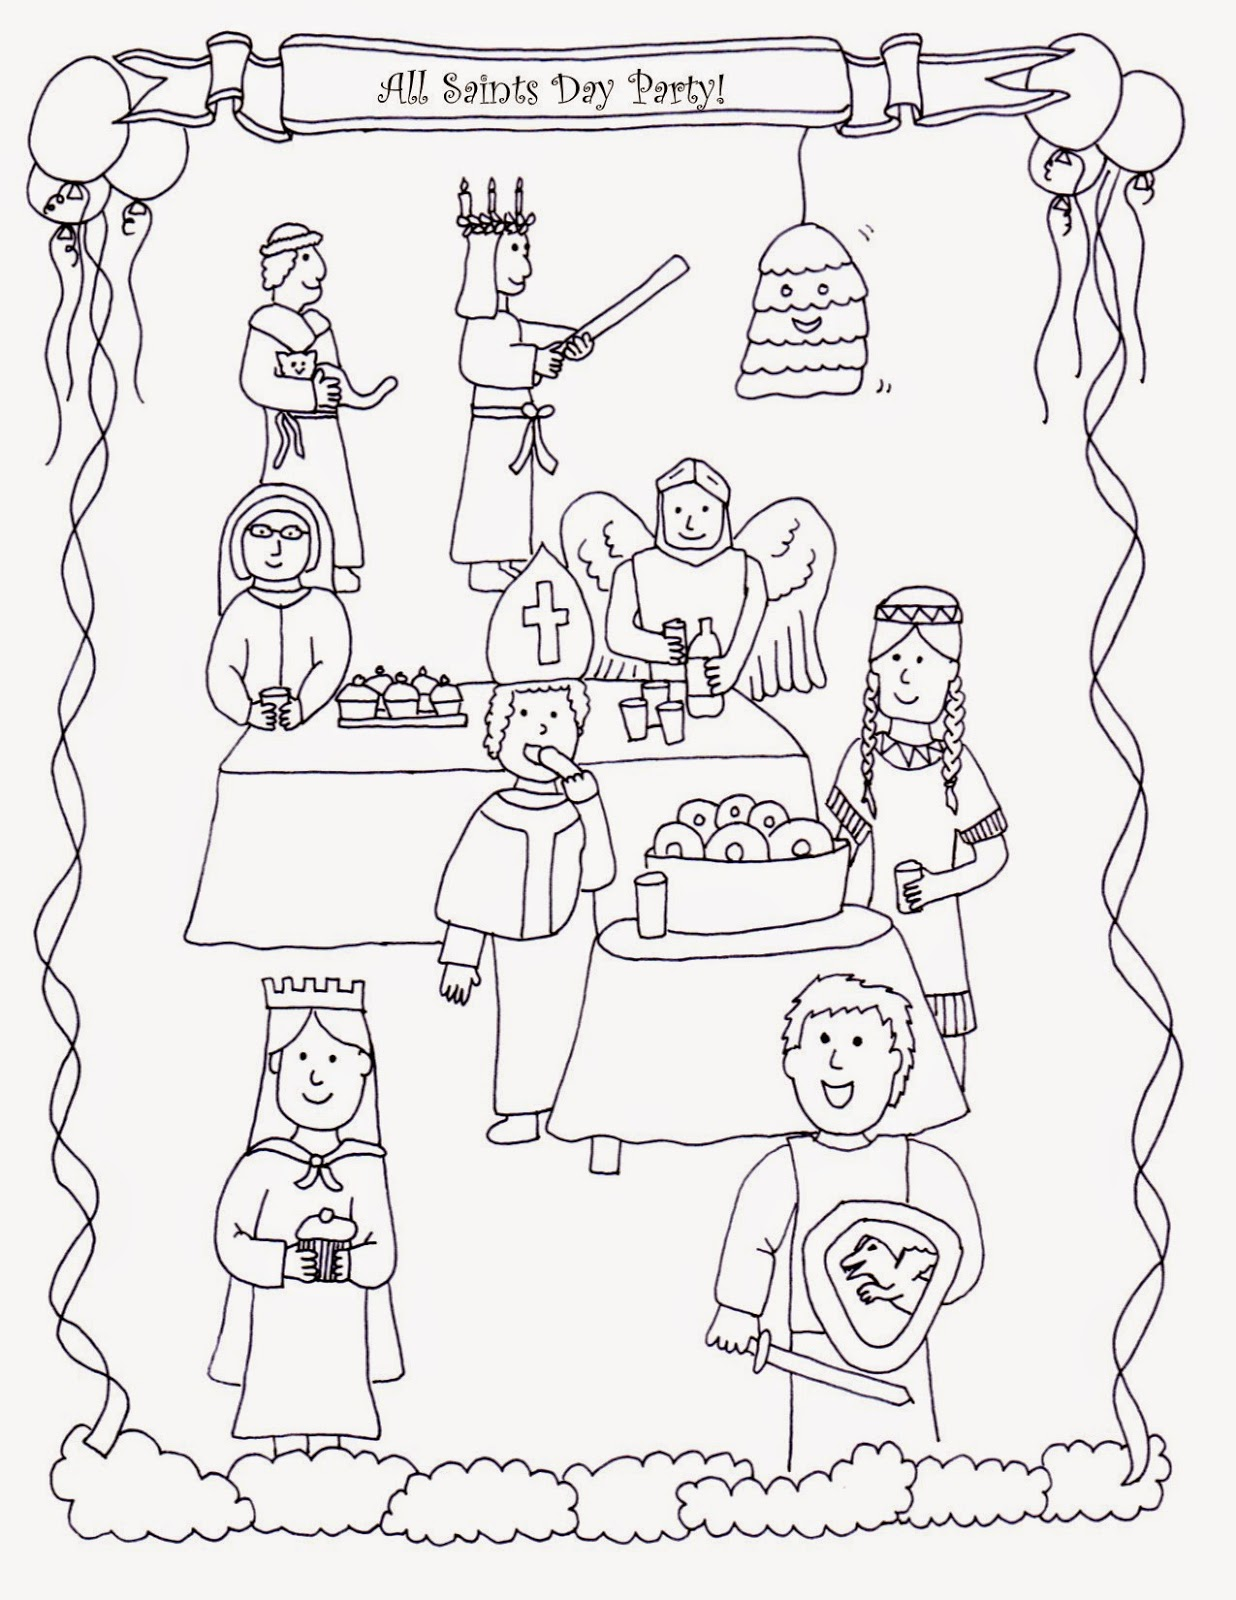 Drawn2BCreative: All Saints Day Coloring Page